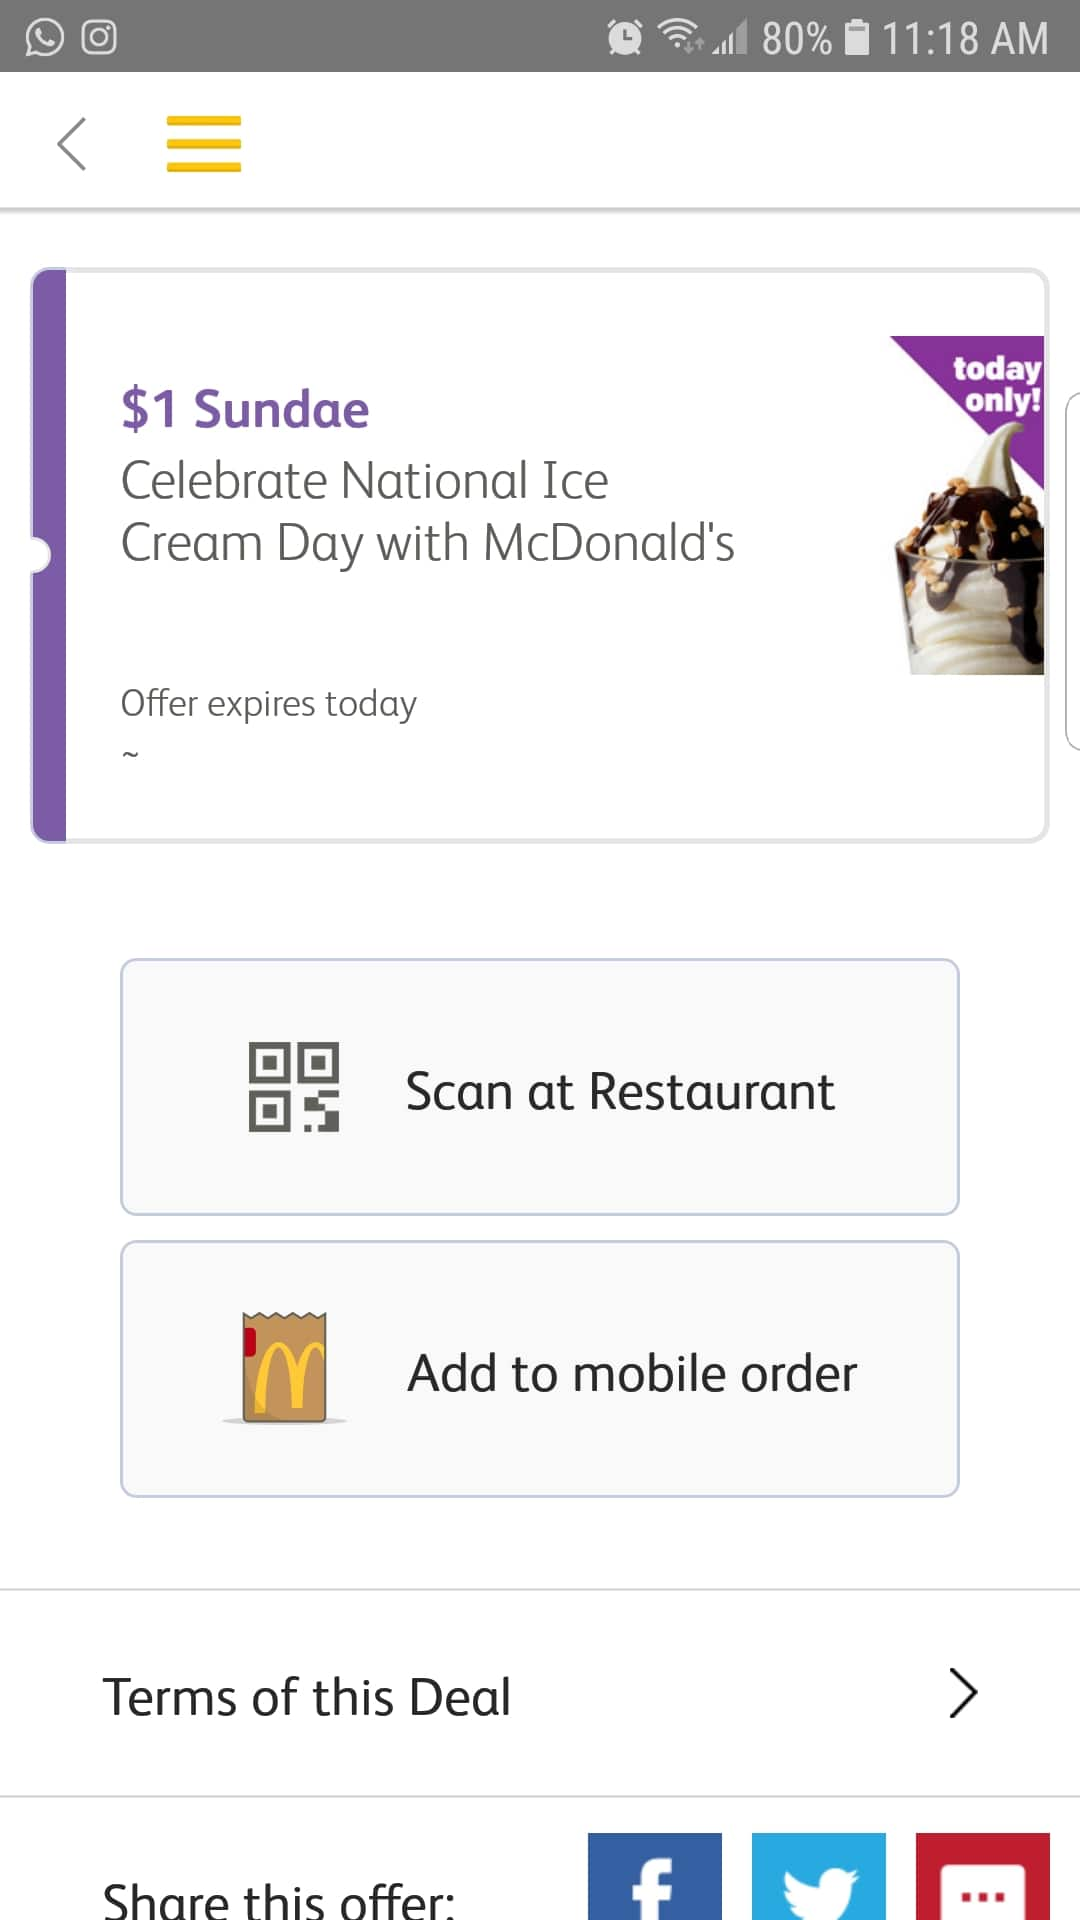 McDonald's $1 Sundae (for today only) *App only*